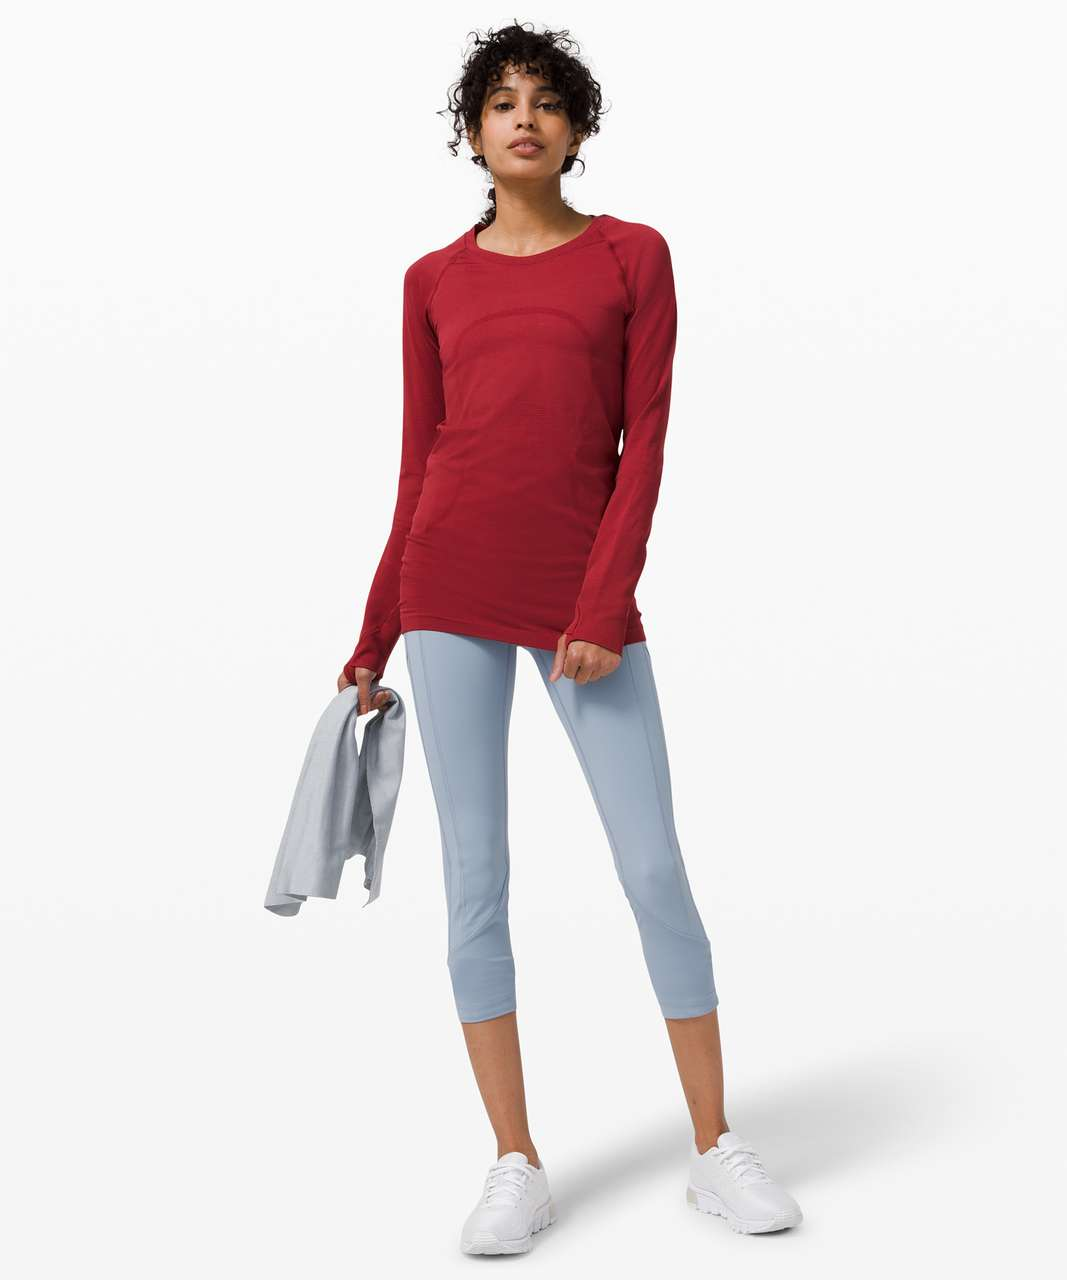 Lululemon Swiftly Tech Long Sleeve 2.0 - Prep Red / Prep Red (First Release)